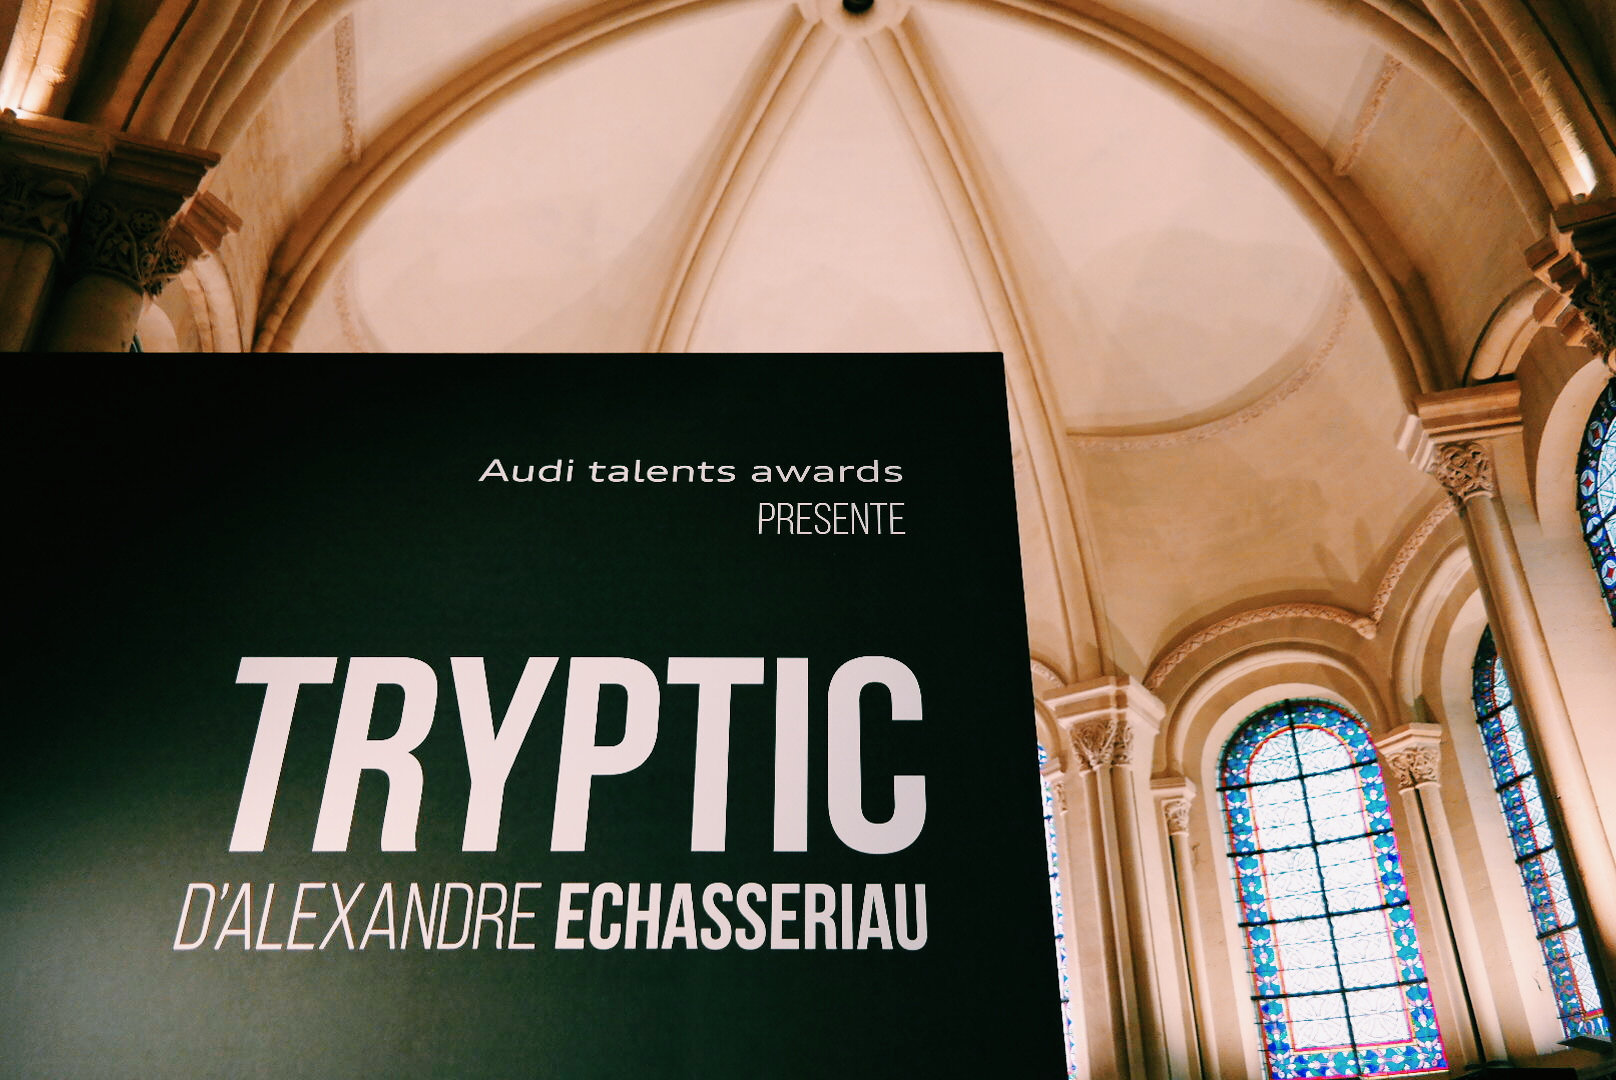 Exposition-Tryptic-Alexandre-Echasseriau-designer-lauréat-Audi-Talents-Awards-2014-Chapelle-du-Musée-des-Arts-et-Métiers-Paris-DDays-2015-photo-by-united-states-of-paris